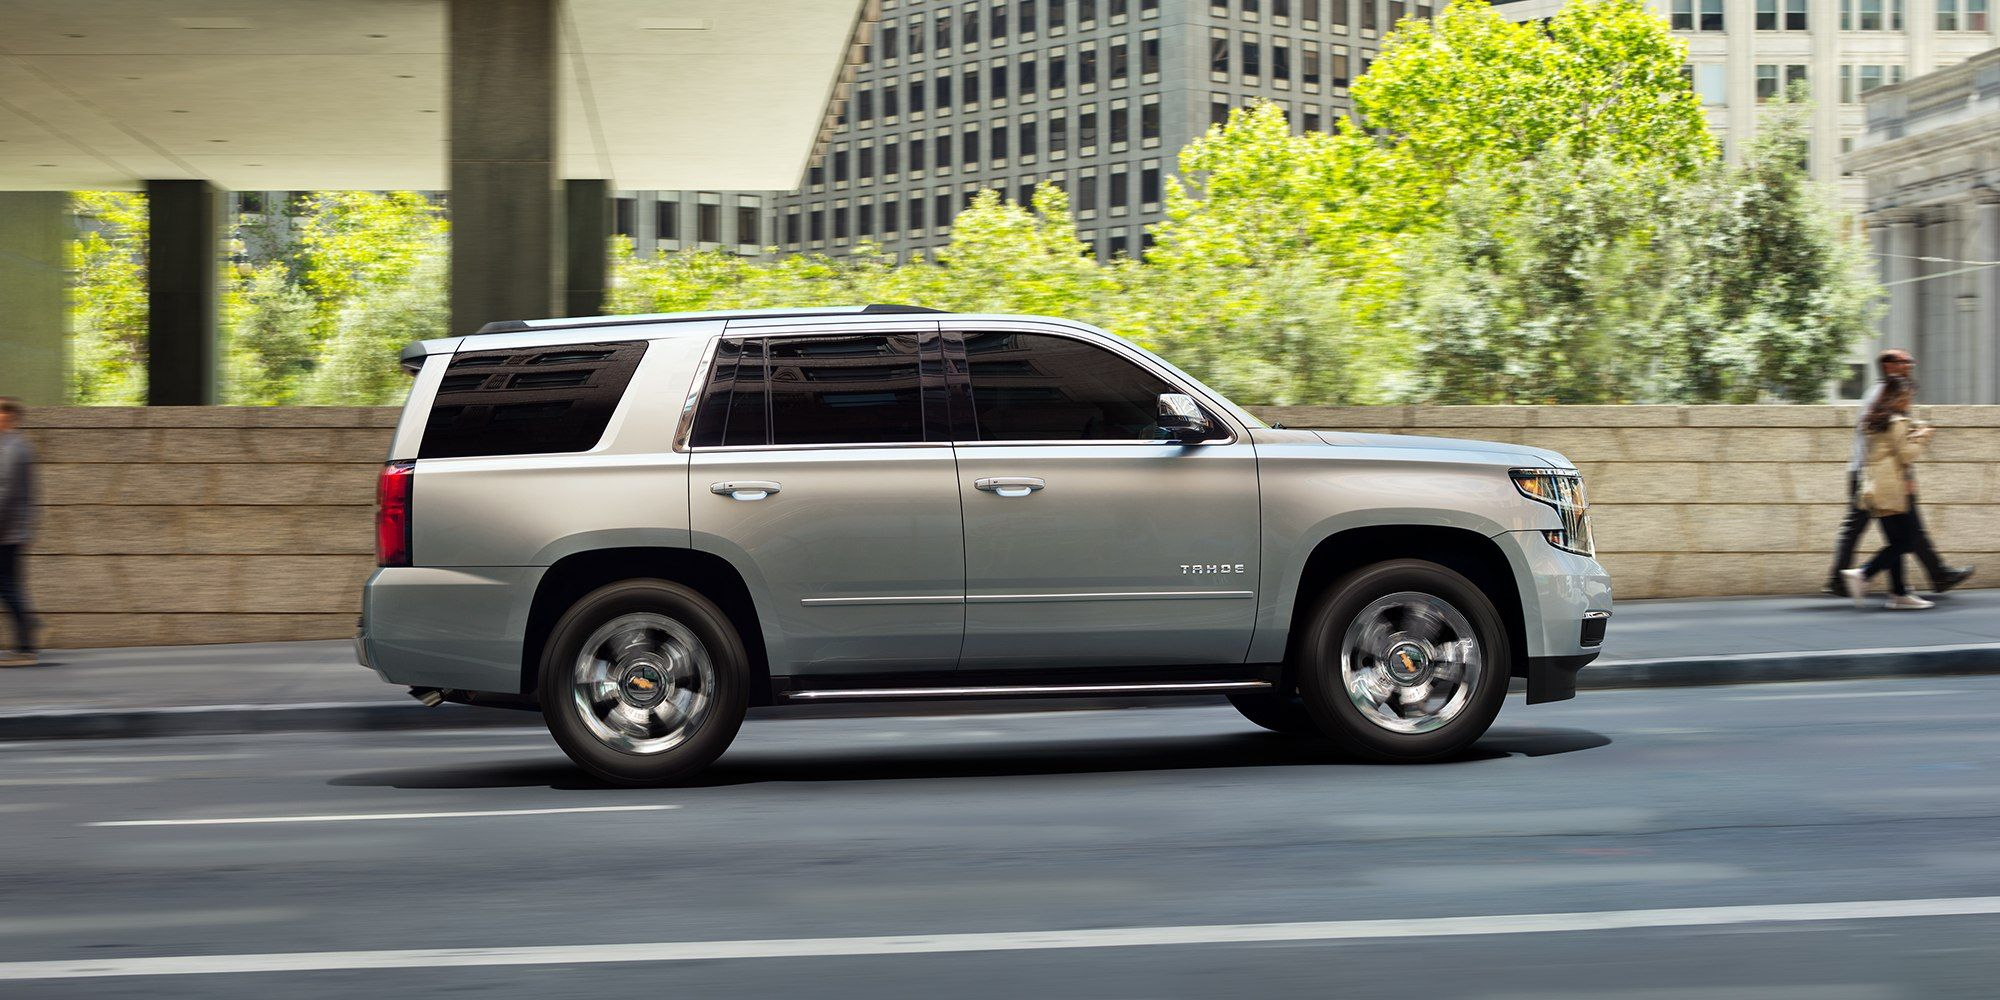 2019 Chevrolet Tahoe Suv Car For Sale In Houston Tx